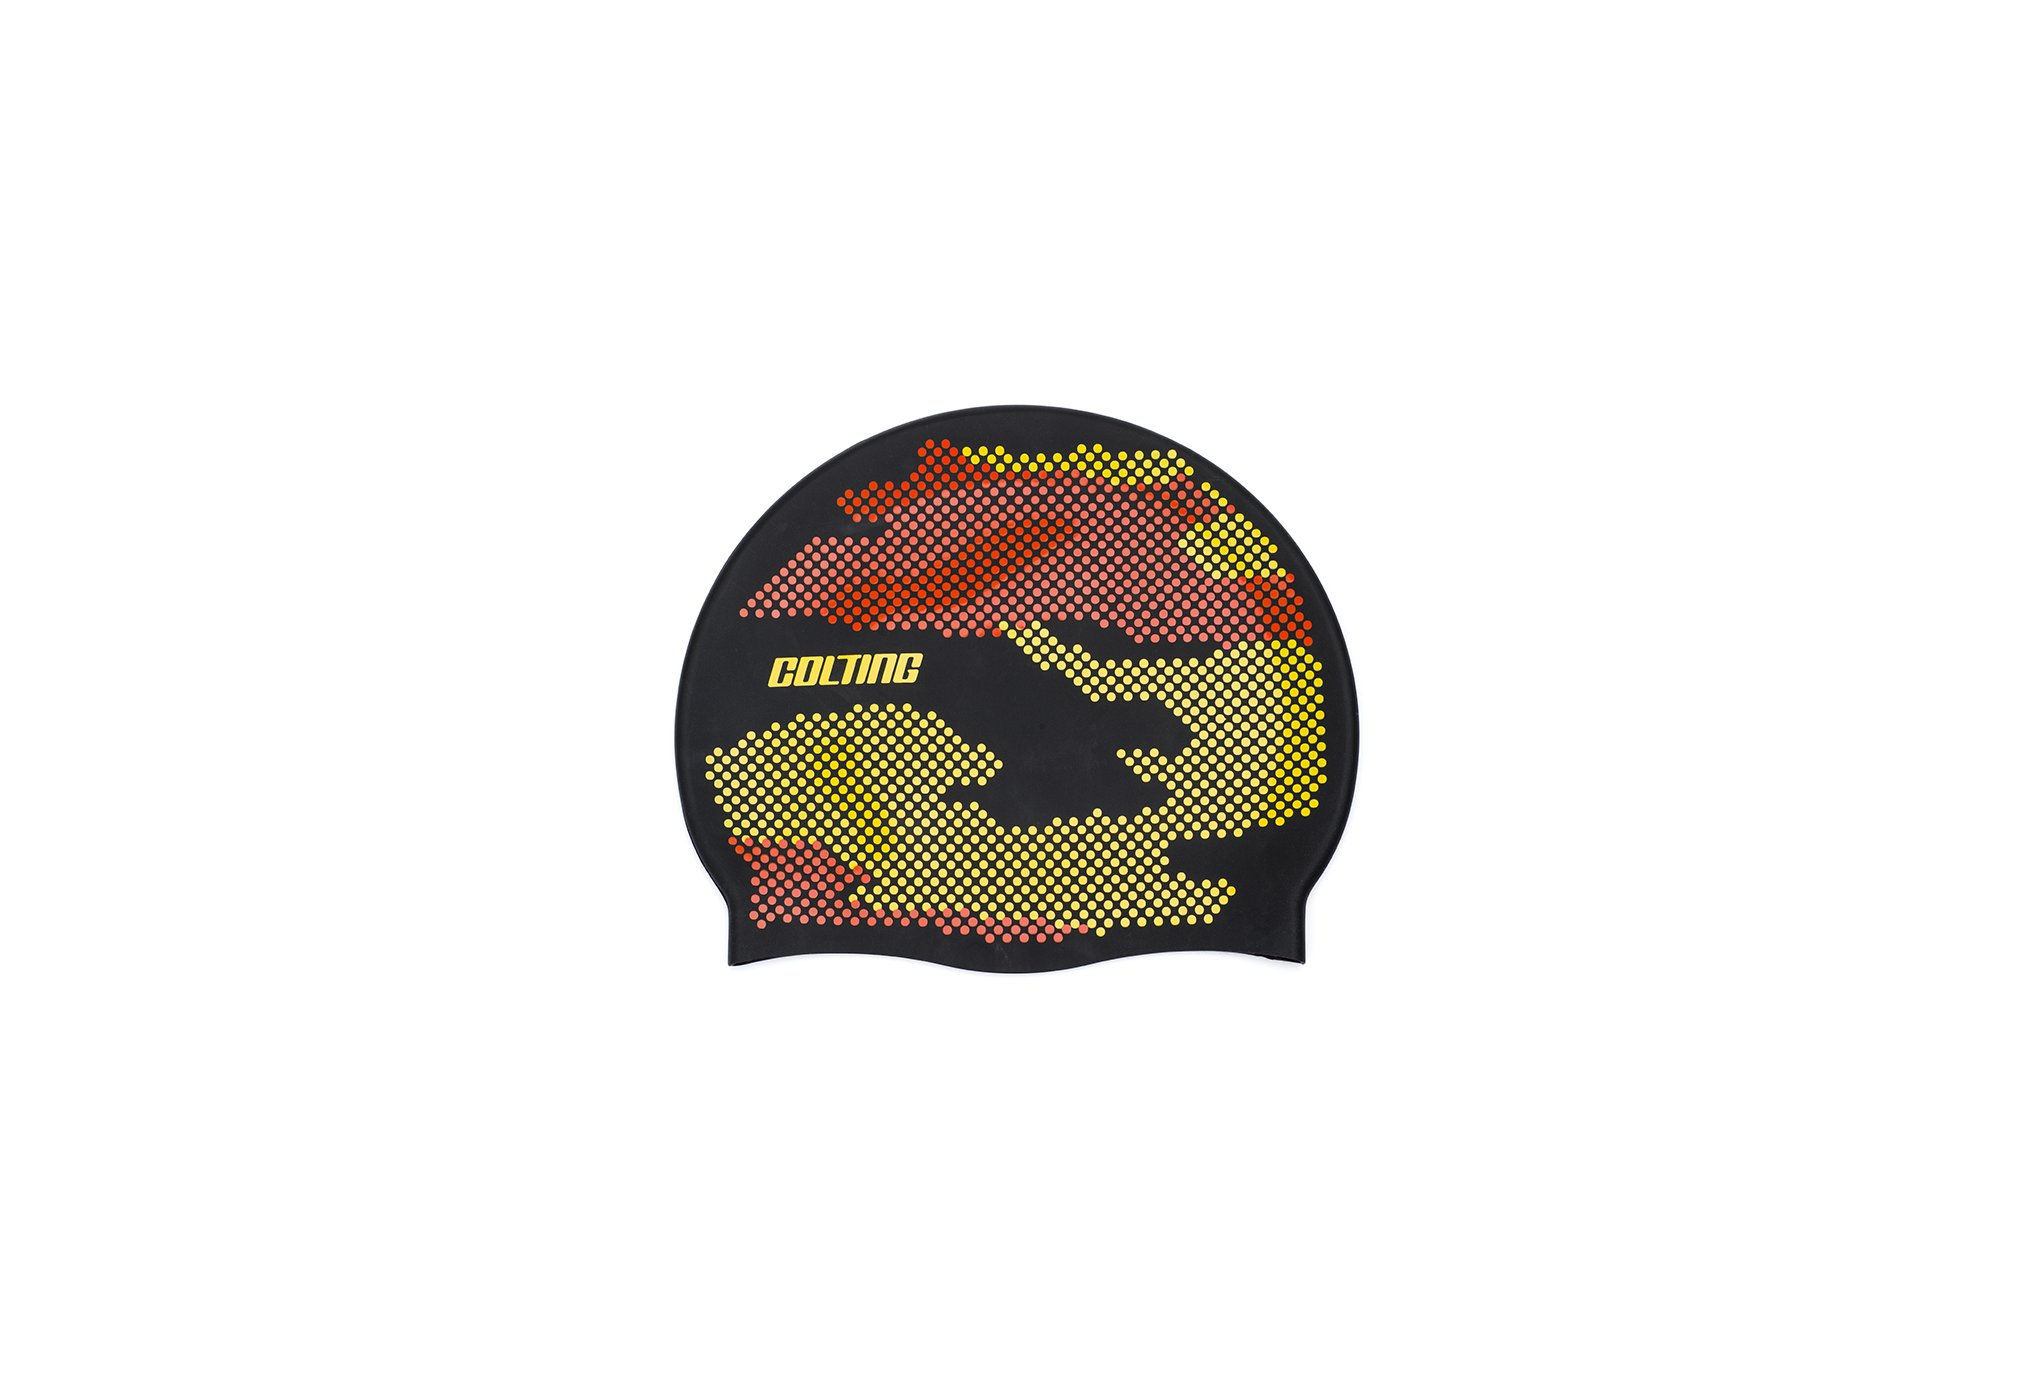 Colting Swimcap triathlon-Natation